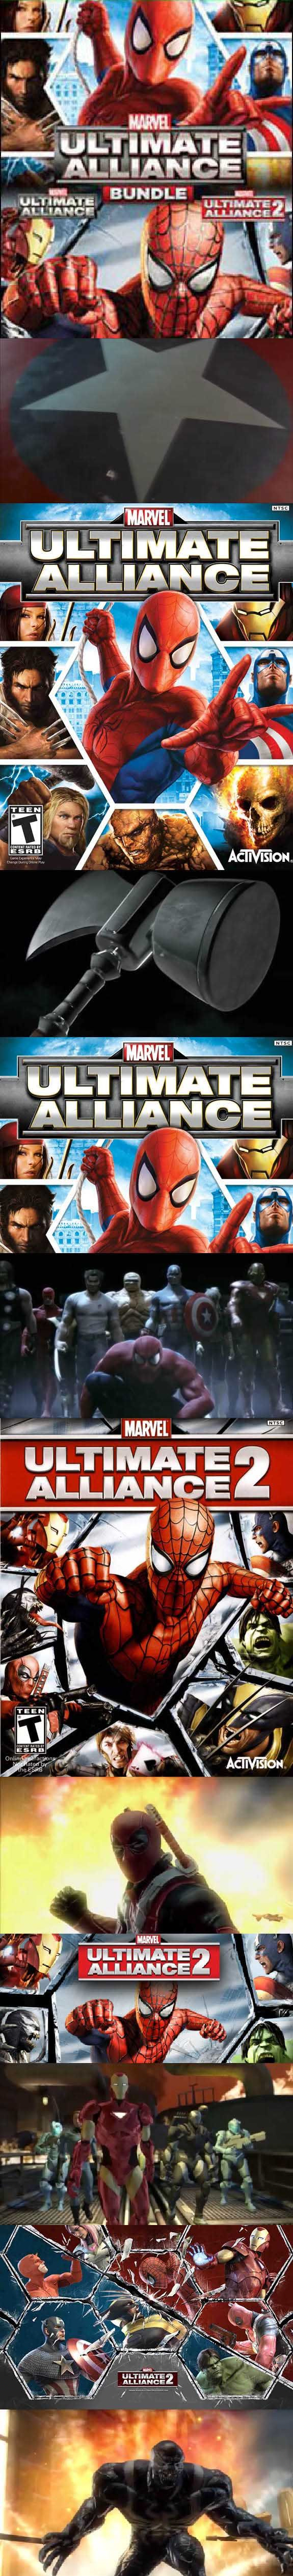 #SuperHeroGamer #Marvel Ultimate Alliance Bundle has both games in the series for one price. http://www.levelgamingground.com/marvel-ultimate-alliance-bundle-review.html